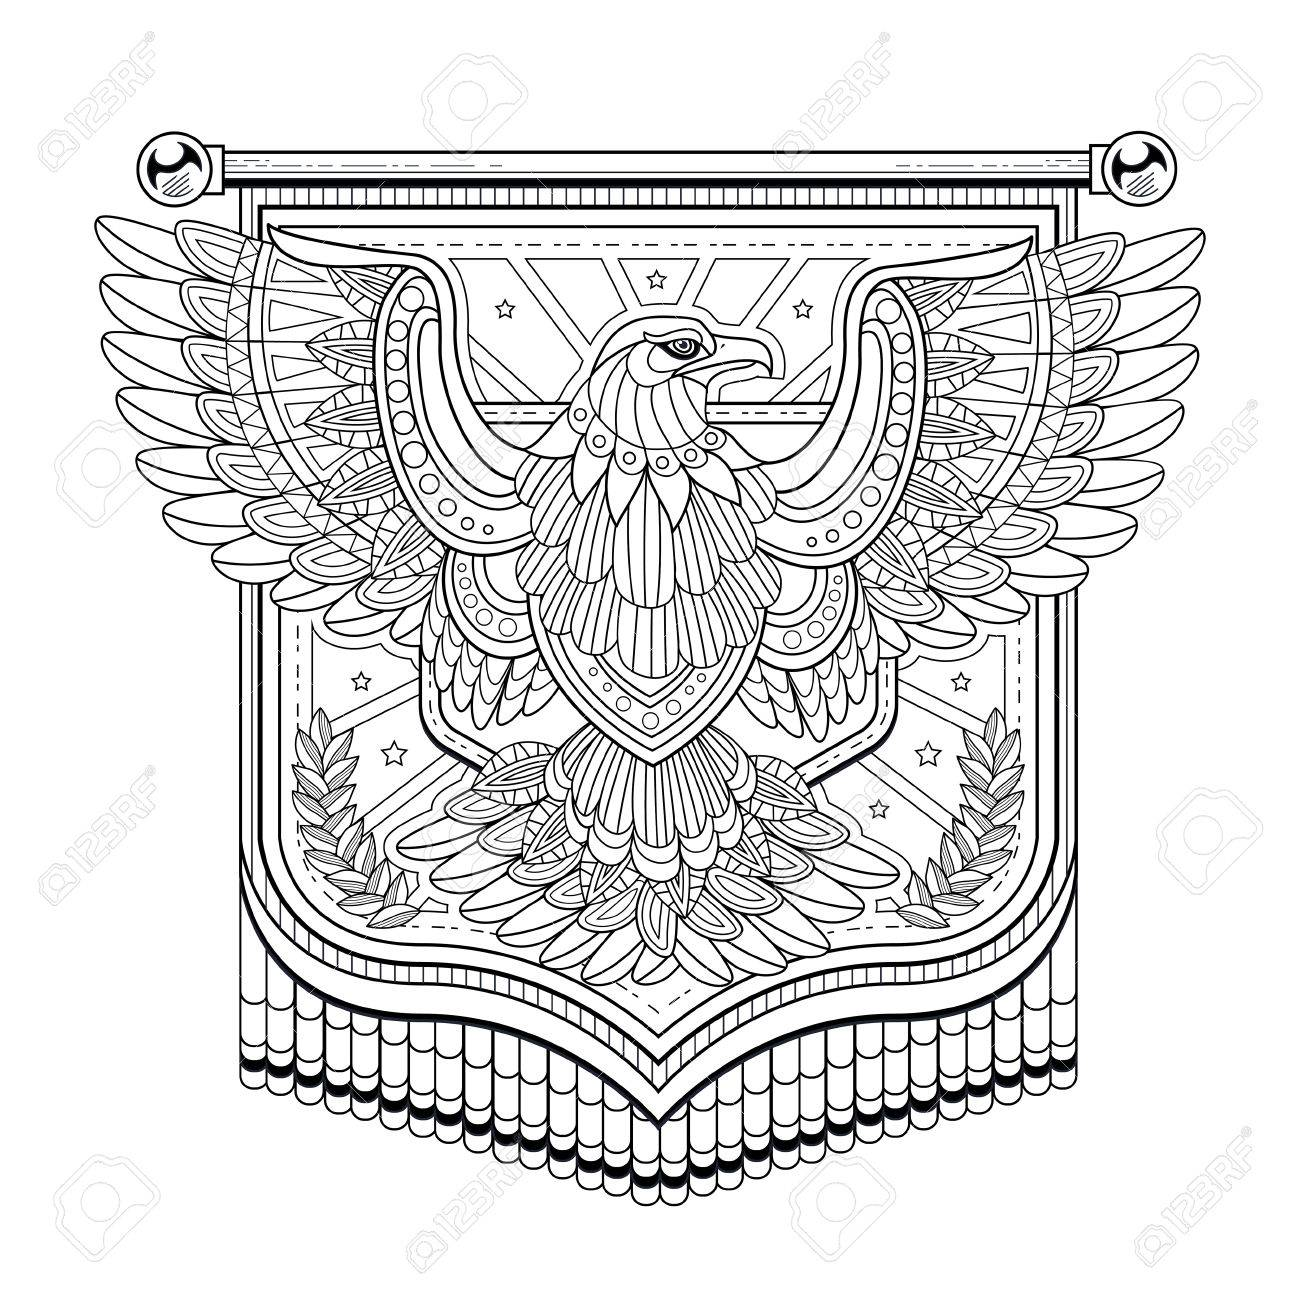 Rica flag coloring page before flag of bermuda u0026middot flag - Rica Flag Coloring Page Before Flag Of Bermuda U0026middot Flag Zambia Flag Coloring Page Sponsored